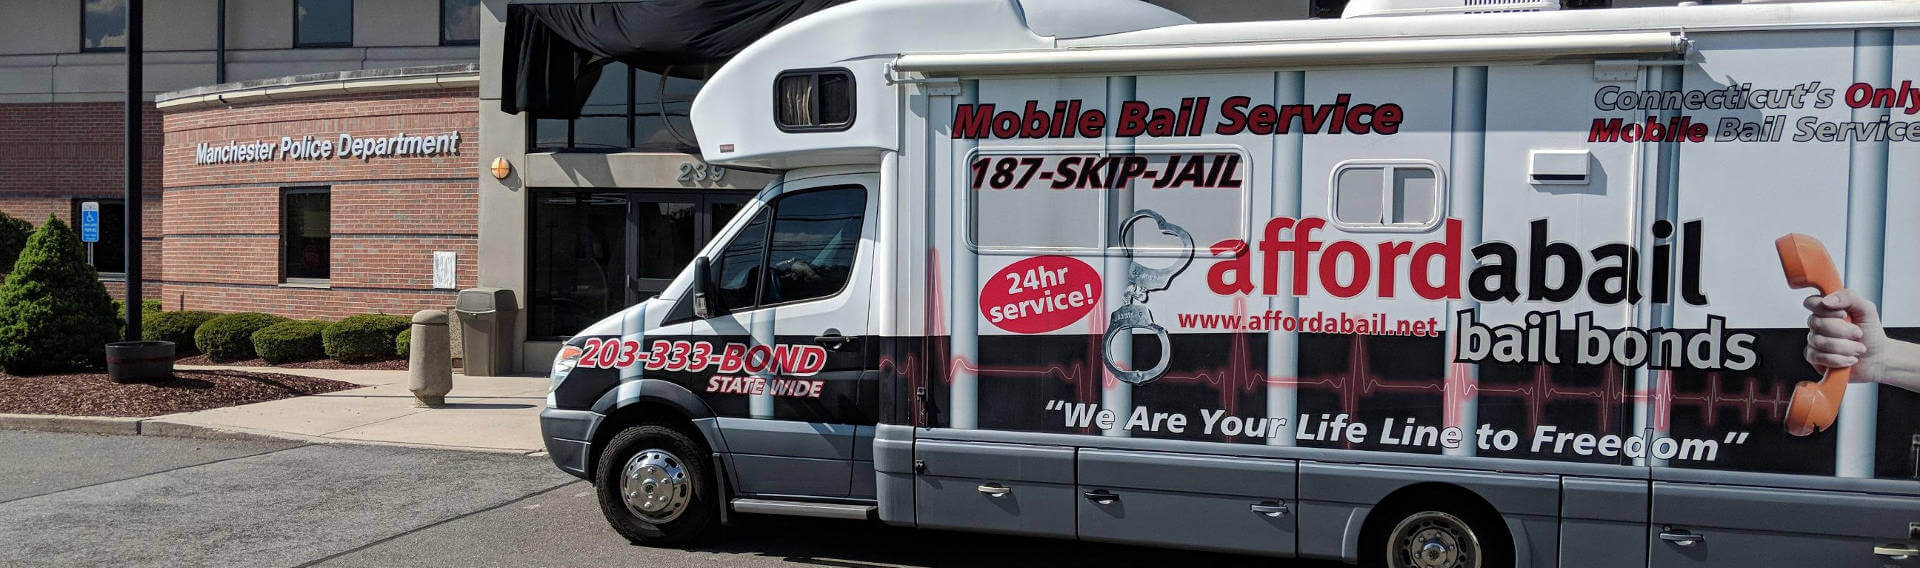 Mobile bail bonds service in Manchester, CT